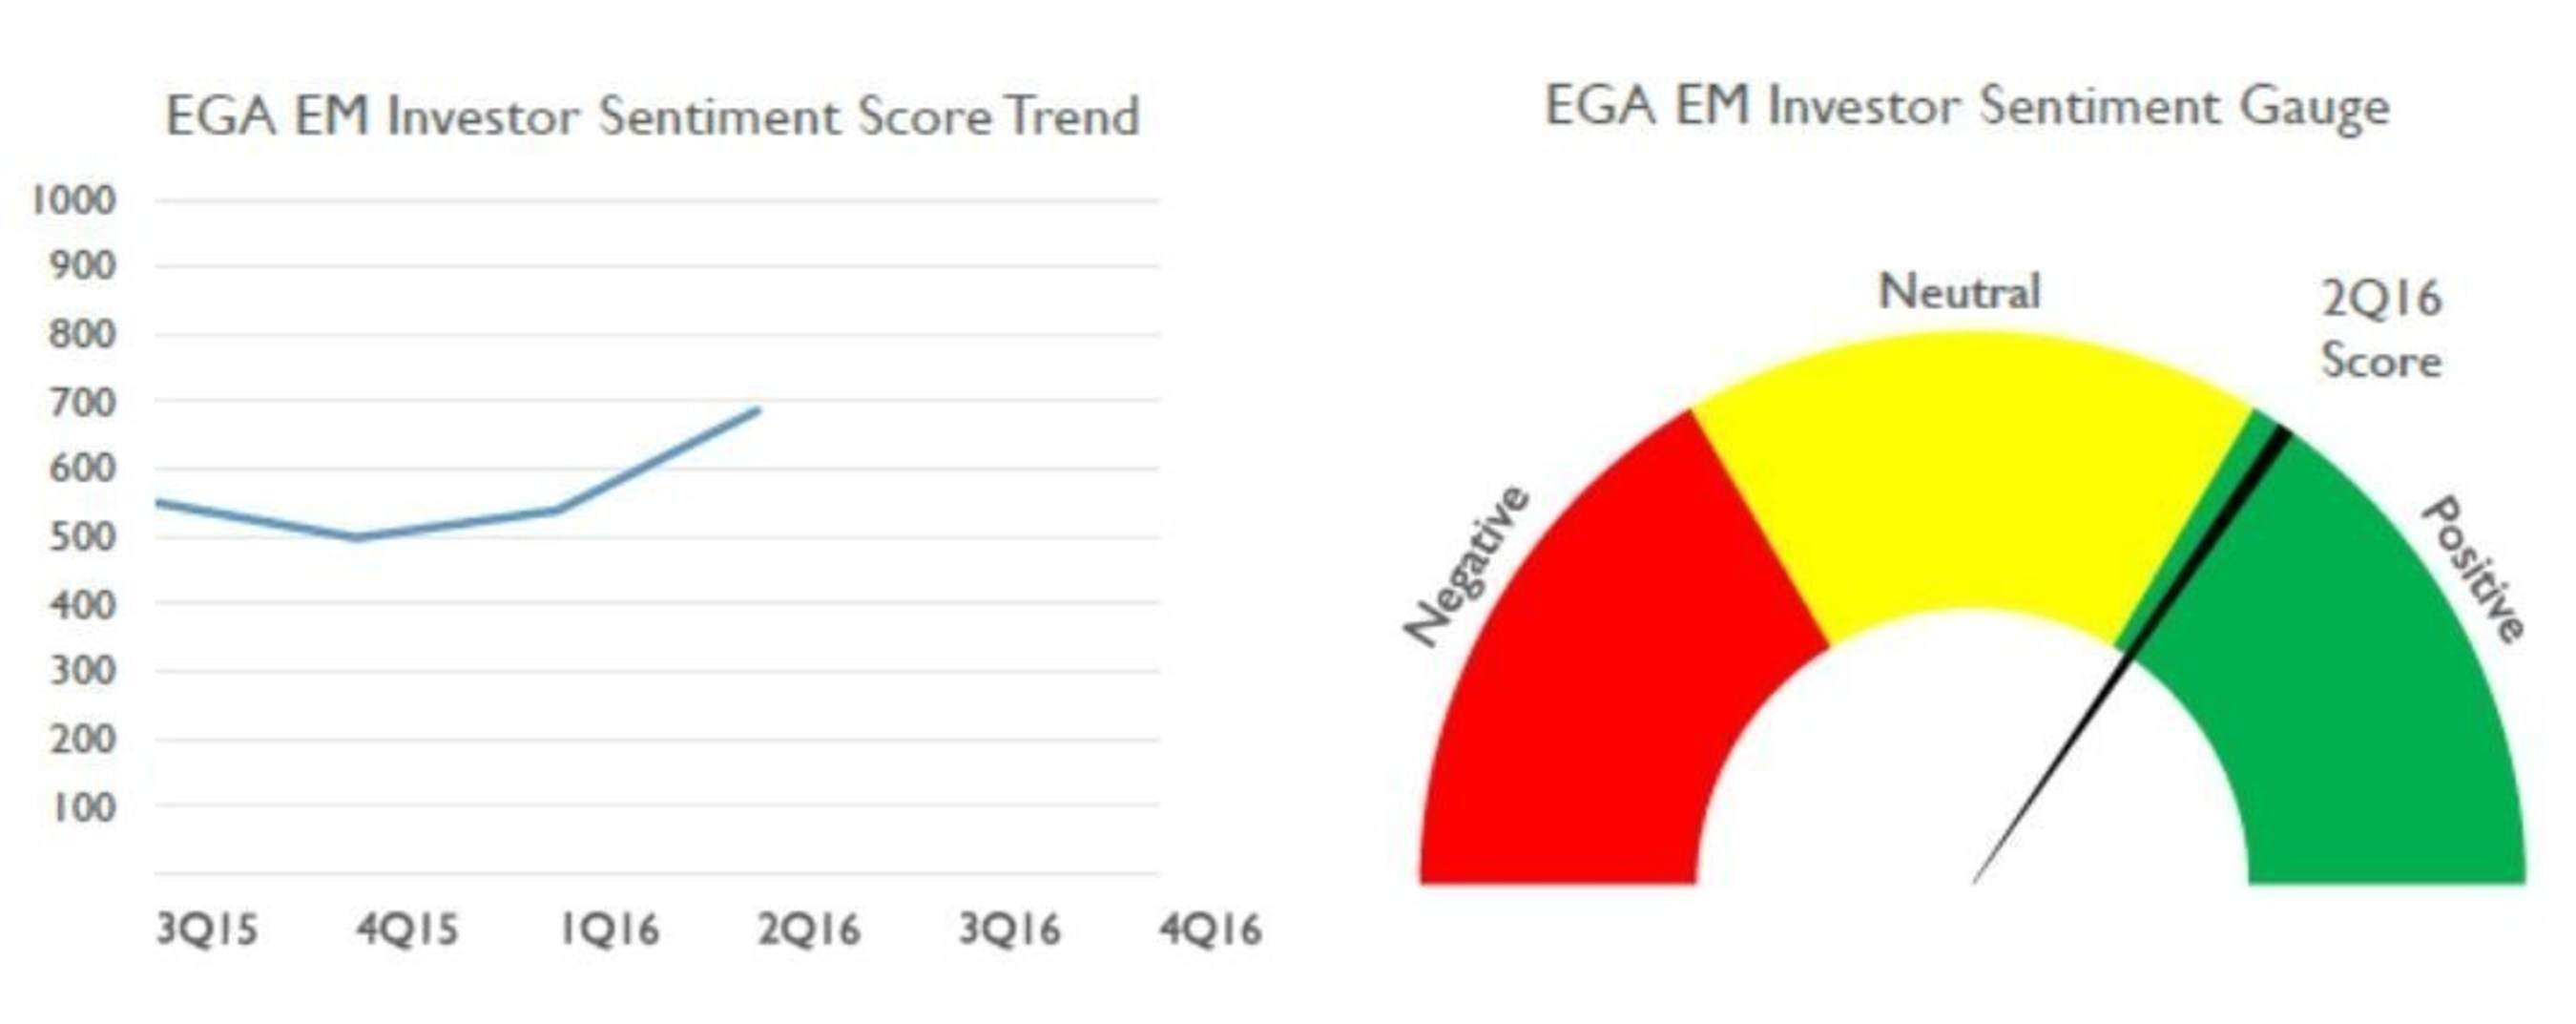 The EGA EM Investor Sentiment score increased 28% from 538 in the first quarter of 2016 to 687 in the second quarter of 2016. Scores range from 0 (most negative) to 1,000 (most positive).